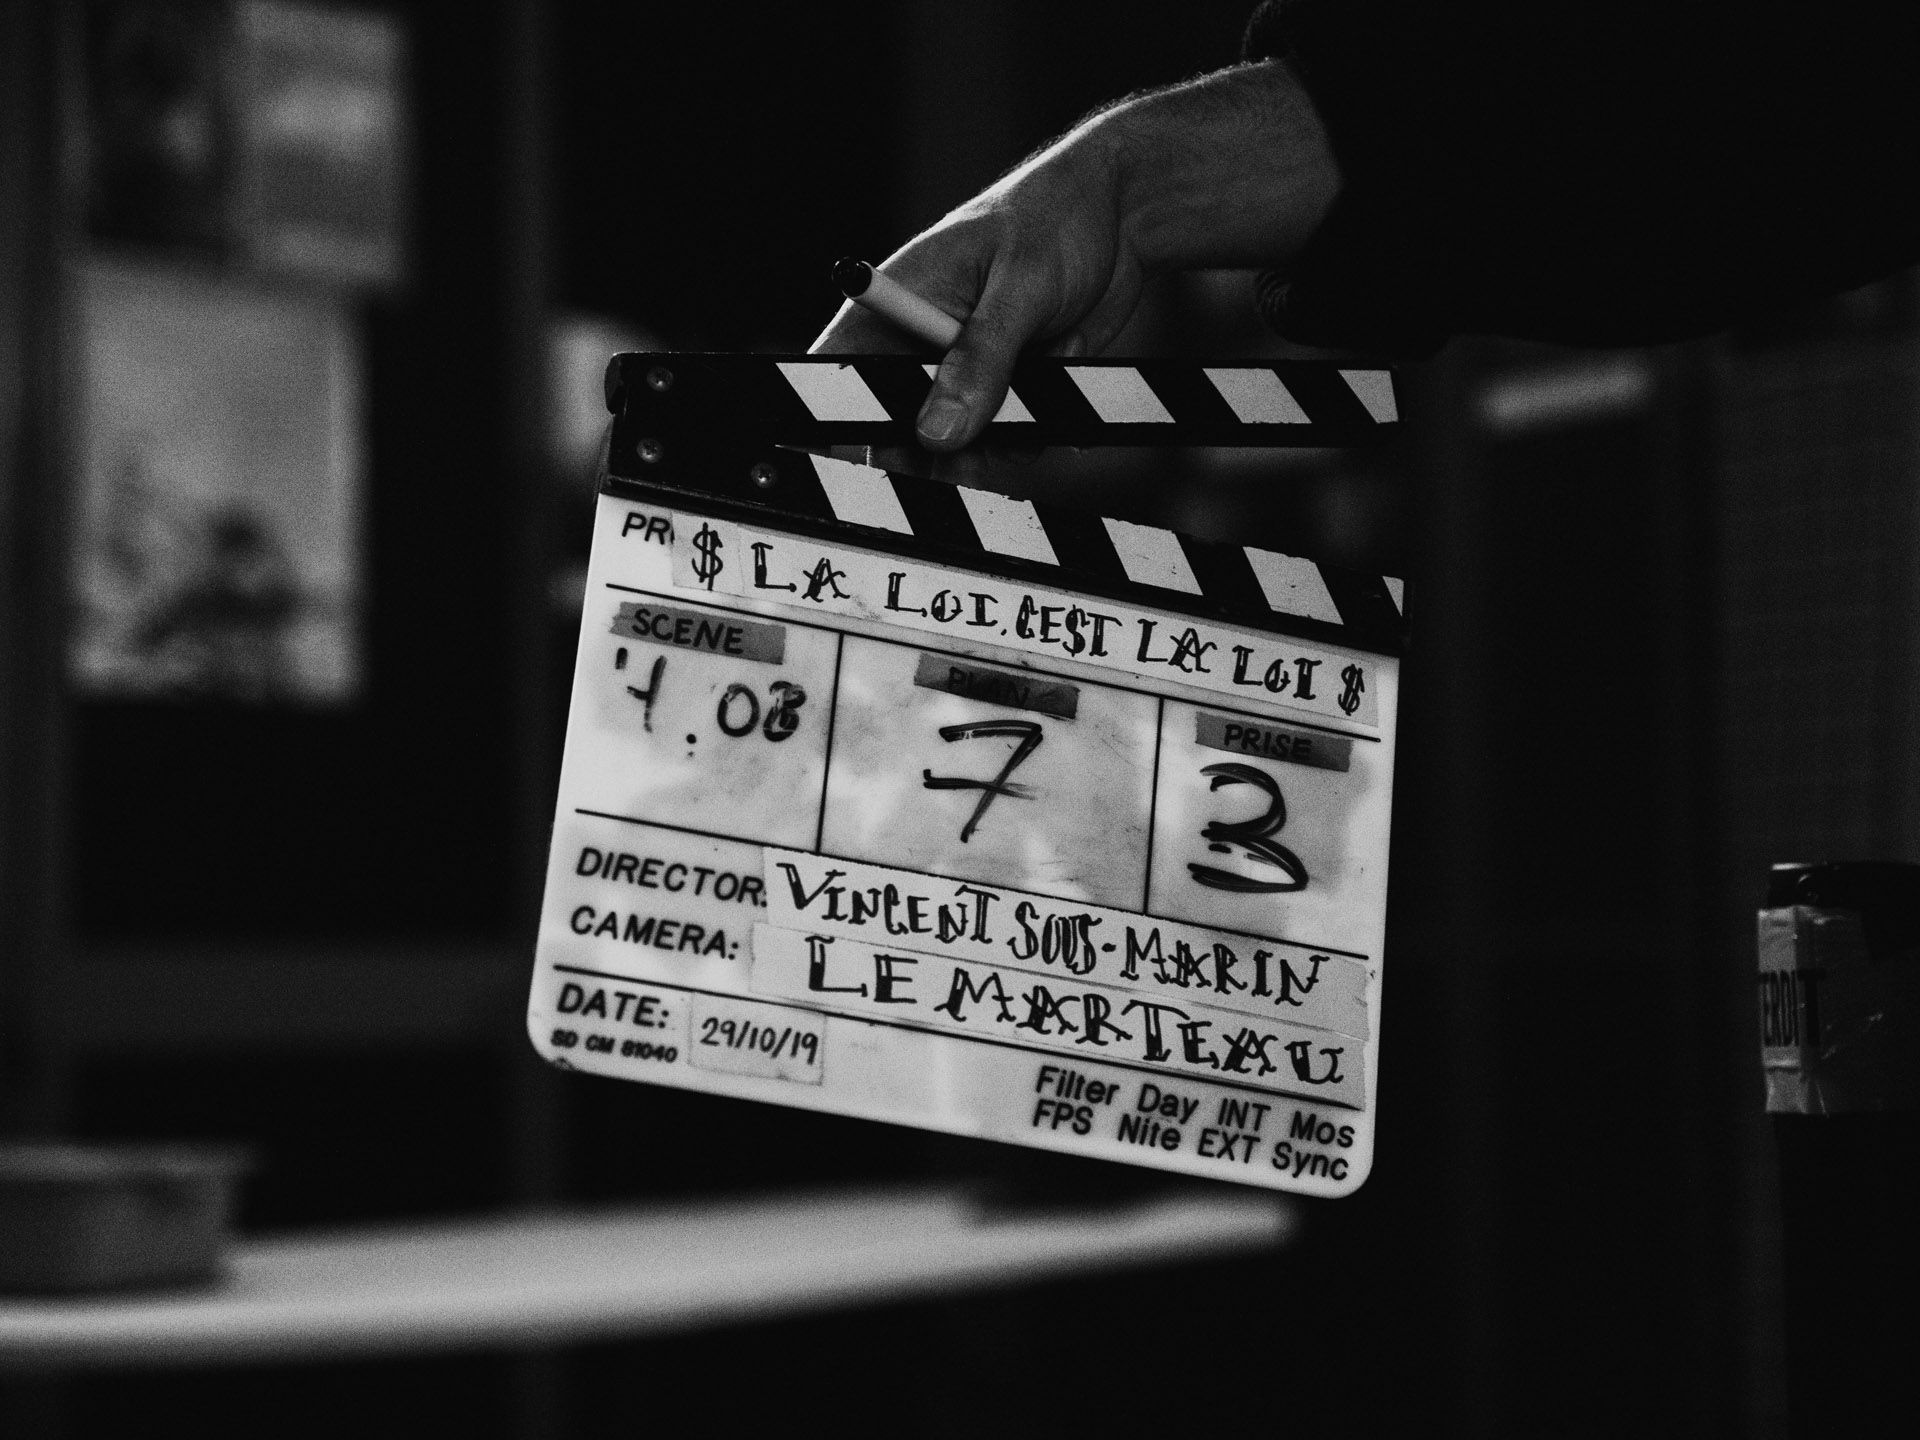 cinema clap with names of Vincent Ruel-Cote and Marco Gilbert from Les Gamins for TV series La Loi C'est La Loi shooting